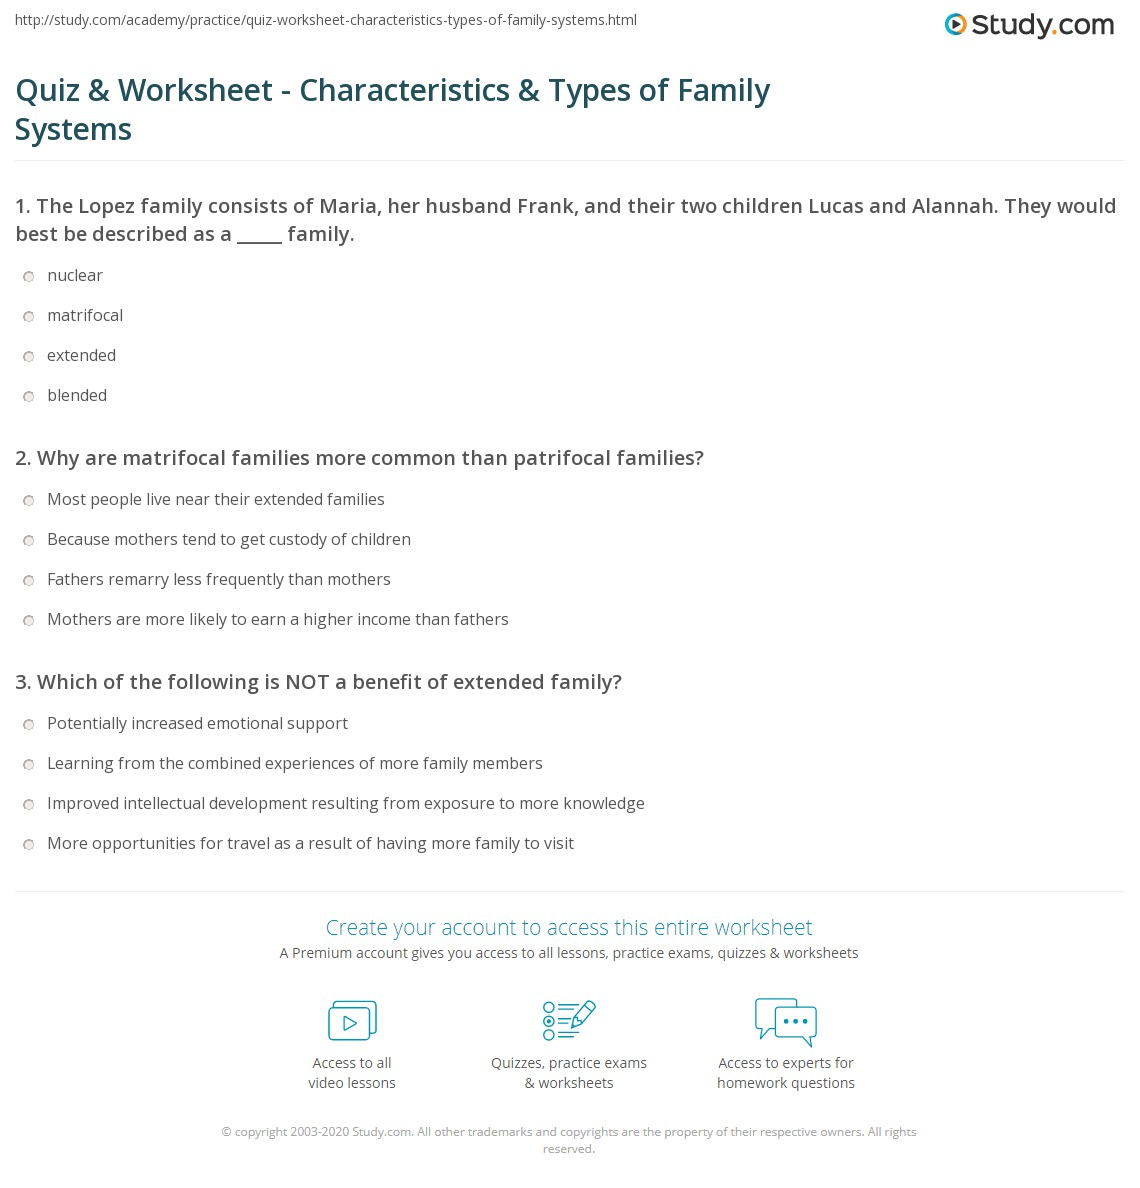 Quiz & Worksheet - Characteristics & Types of Family Systems